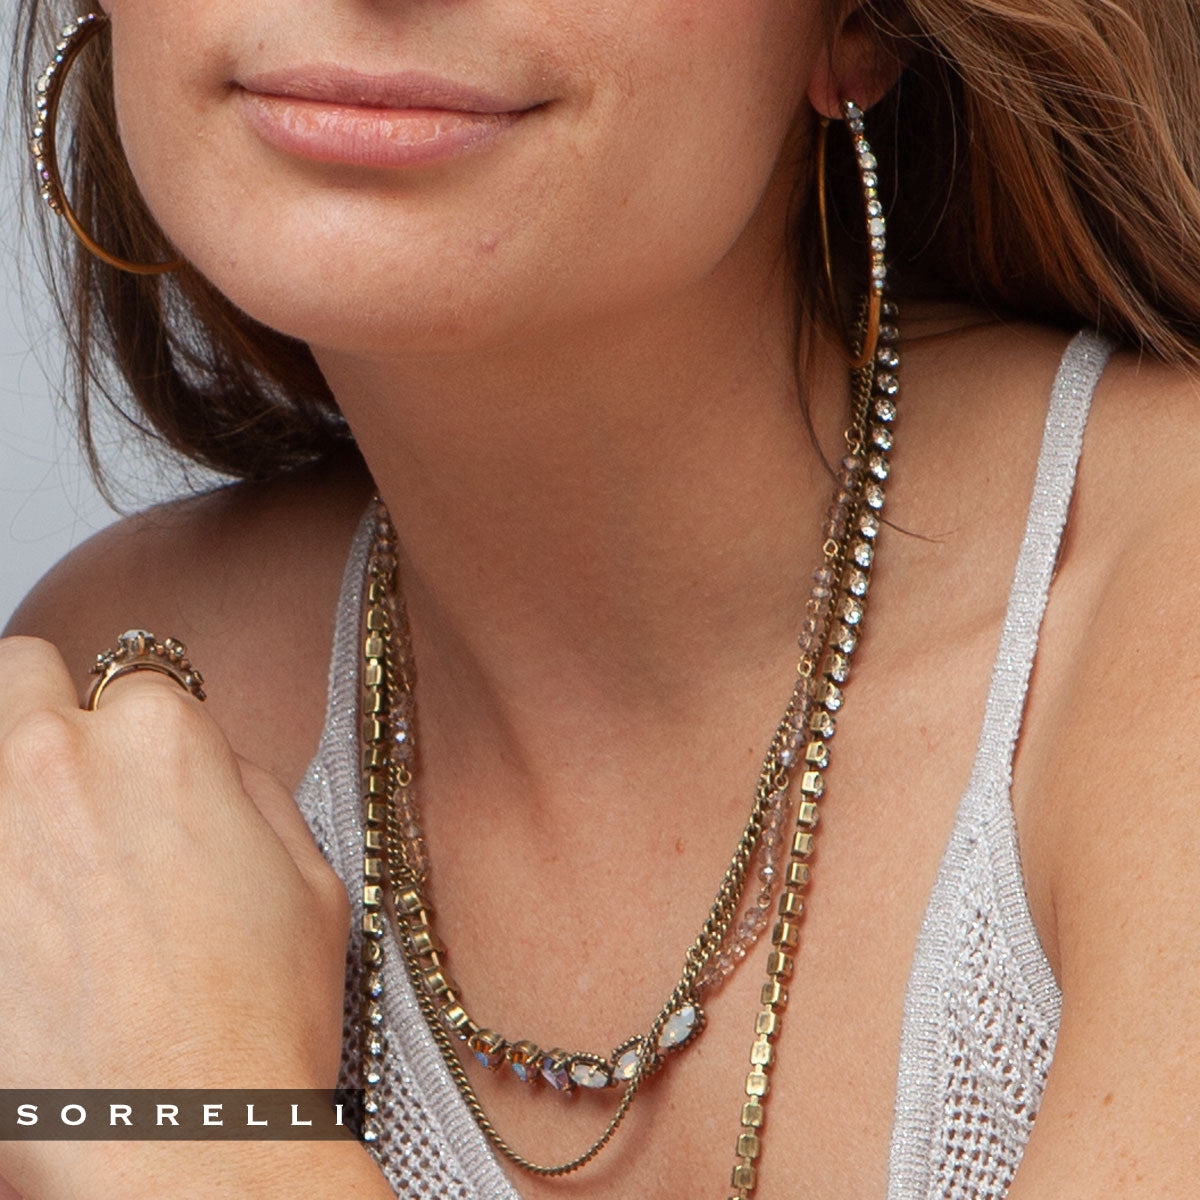 Fabienne Layered Necklace - NEK30AGROB